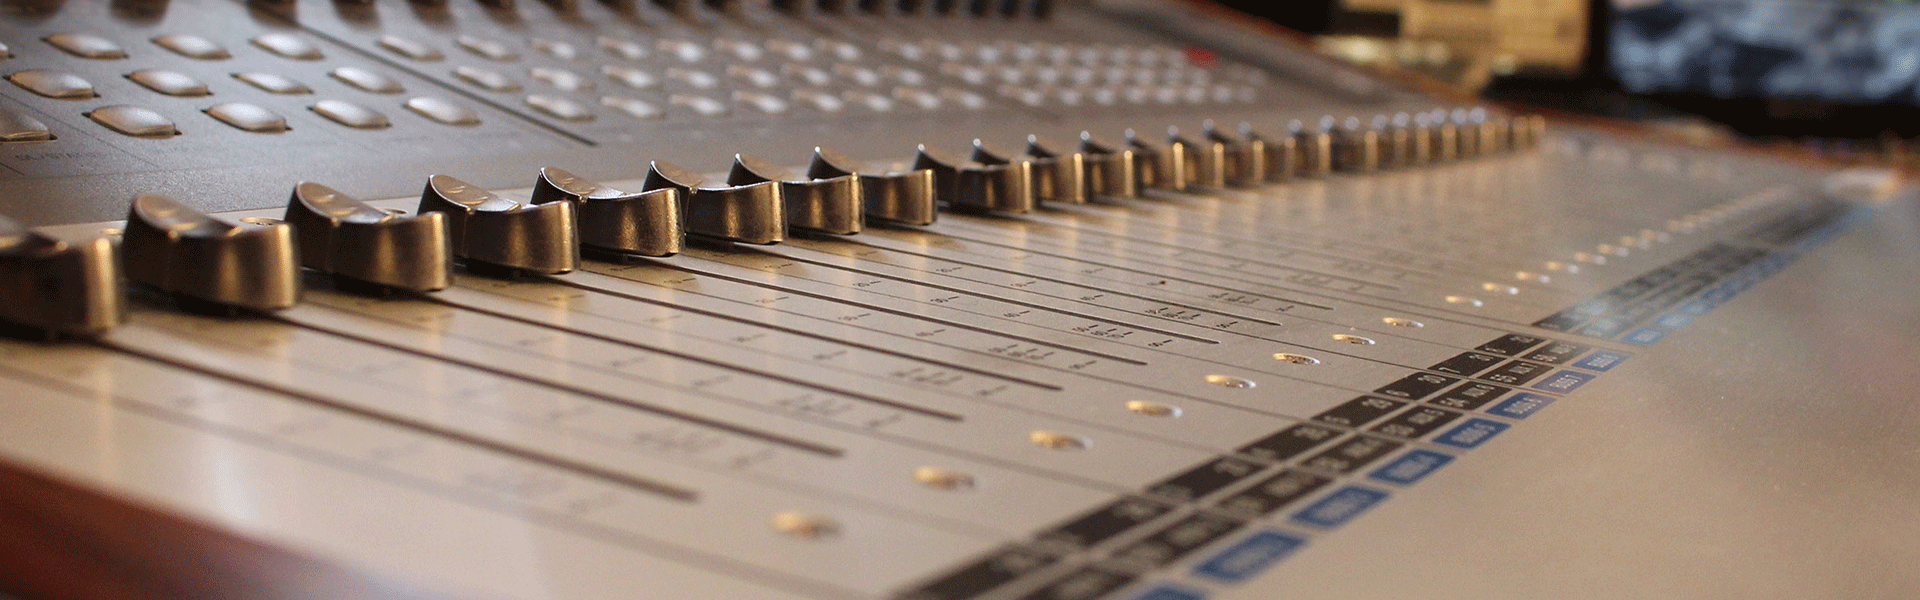 Image of mixing console